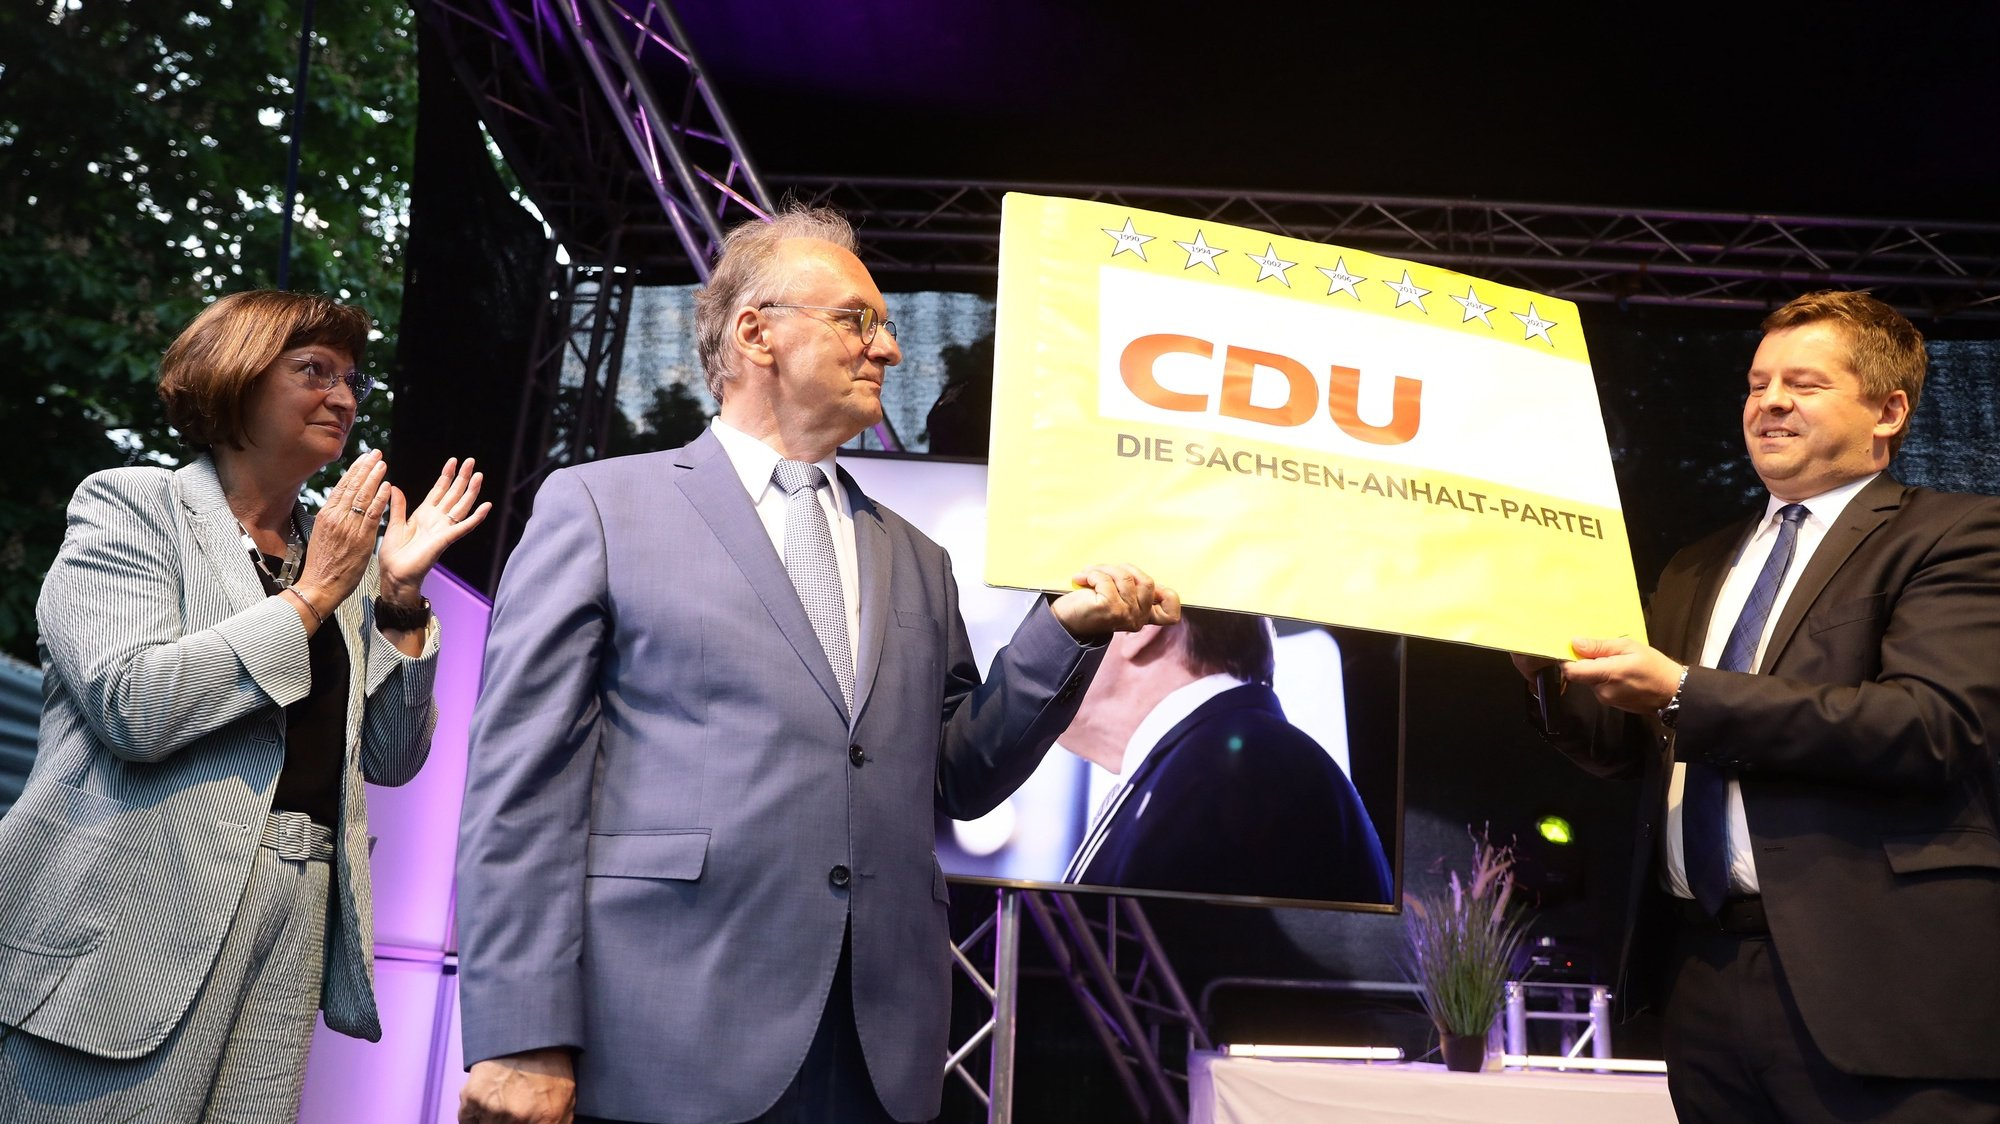 epa09251925 The leading candidate of the German Christian Democratic Party (CDU), Reiner Haseloff (C), his wife Gabriele (L) and the leader of the Saxony-Anhalt CDU, Sven Schulze, hold a poster with the inscription 'CDU, The Saxony-Anhalt Party',  at the election results party of the CDU following the Saxony-Anhalt state elections in Magdeburg, Germany, 06 June 2021. The regional election in Germany's federal state of Saxony-Anhalt is the last before general elections in September and is considered a trend indicator.  EPA/FILIP SINGER